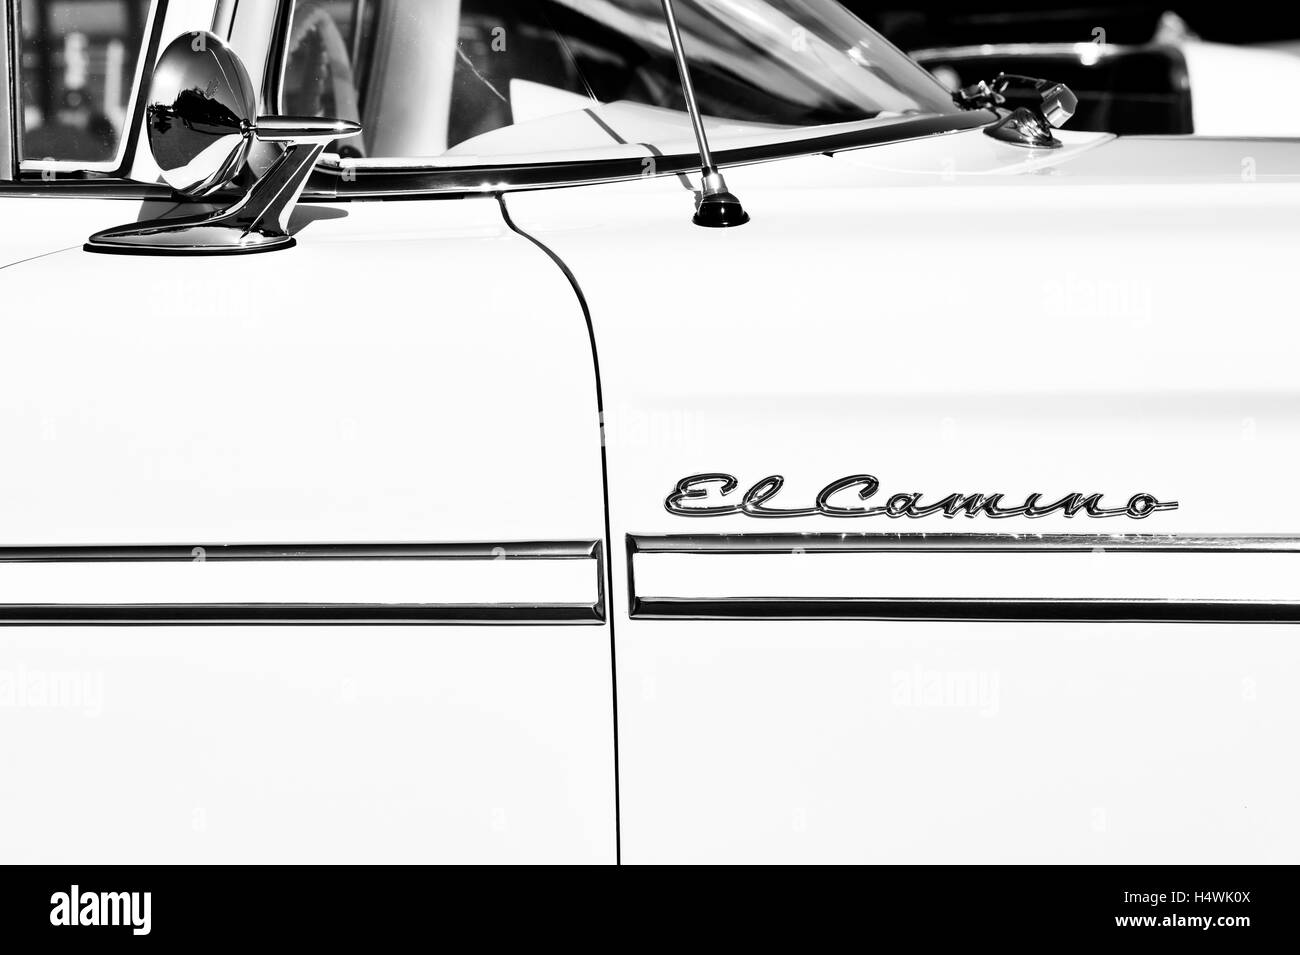 1959 Chevrolet El Camino. Chevy. Classic American car. Black and White. Abstract - Stock Image